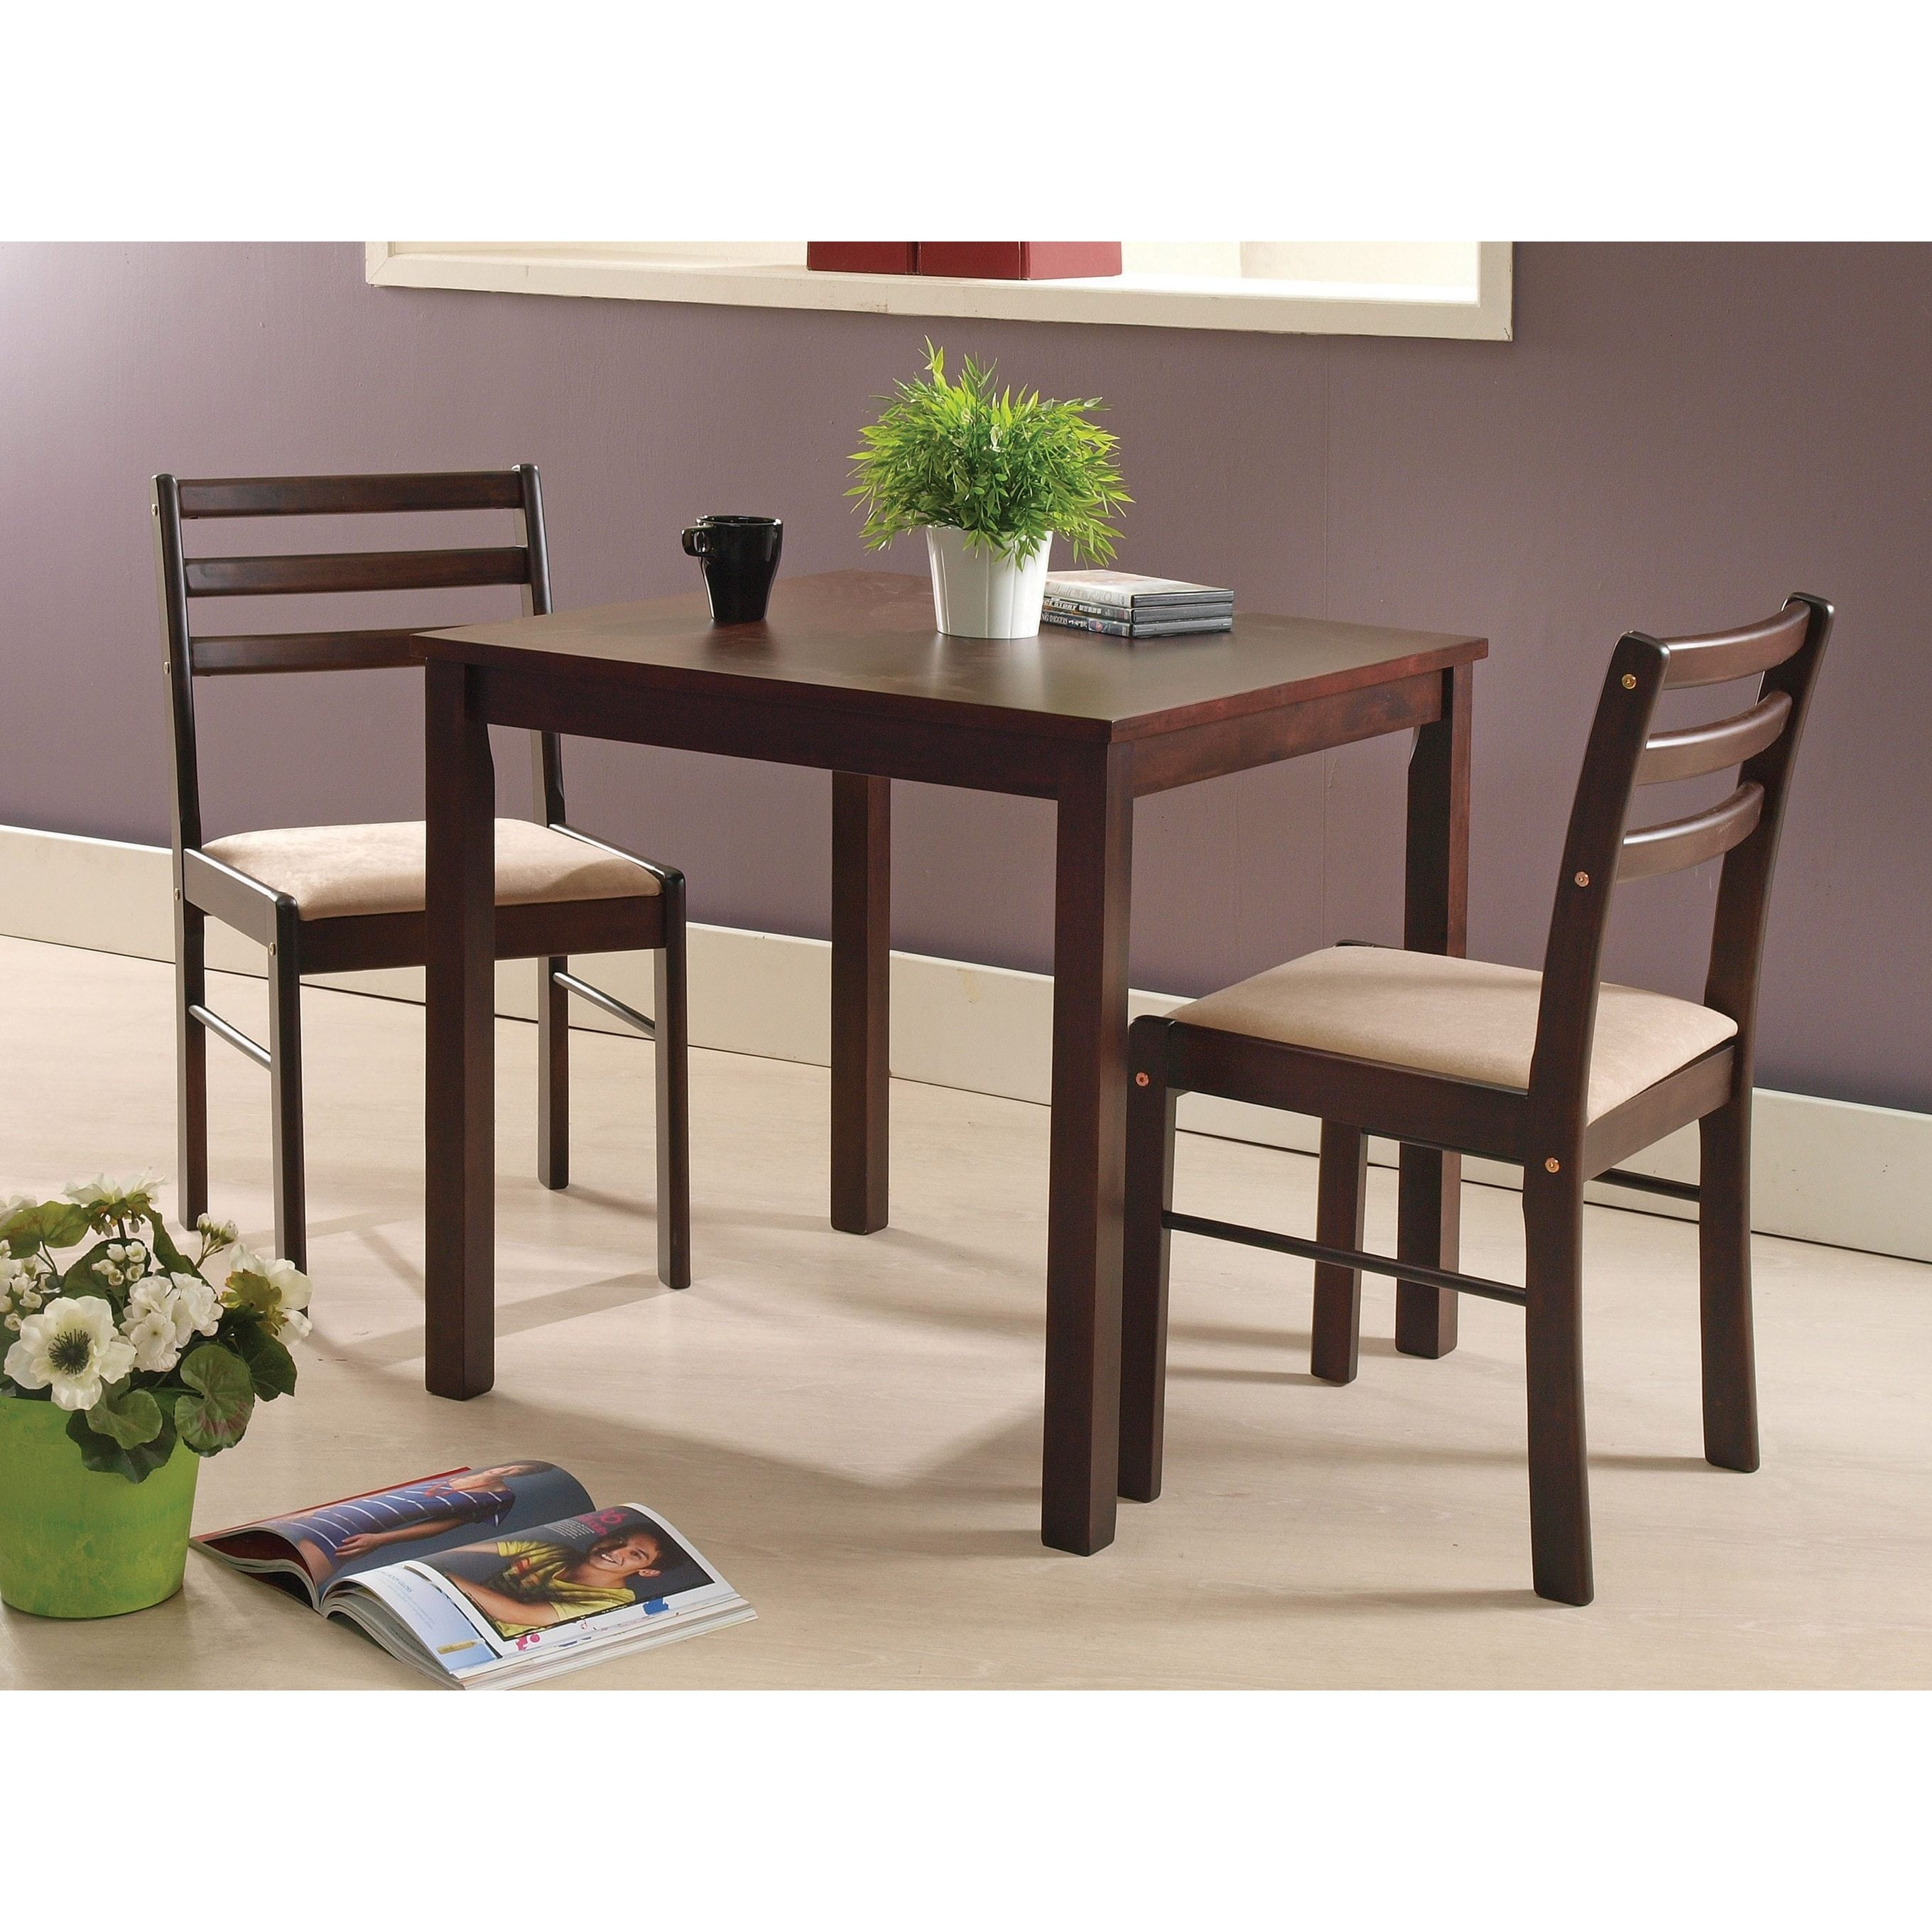 Shop Pilaster Designs Espresso Wood 3 Piece Dining Room Dinette